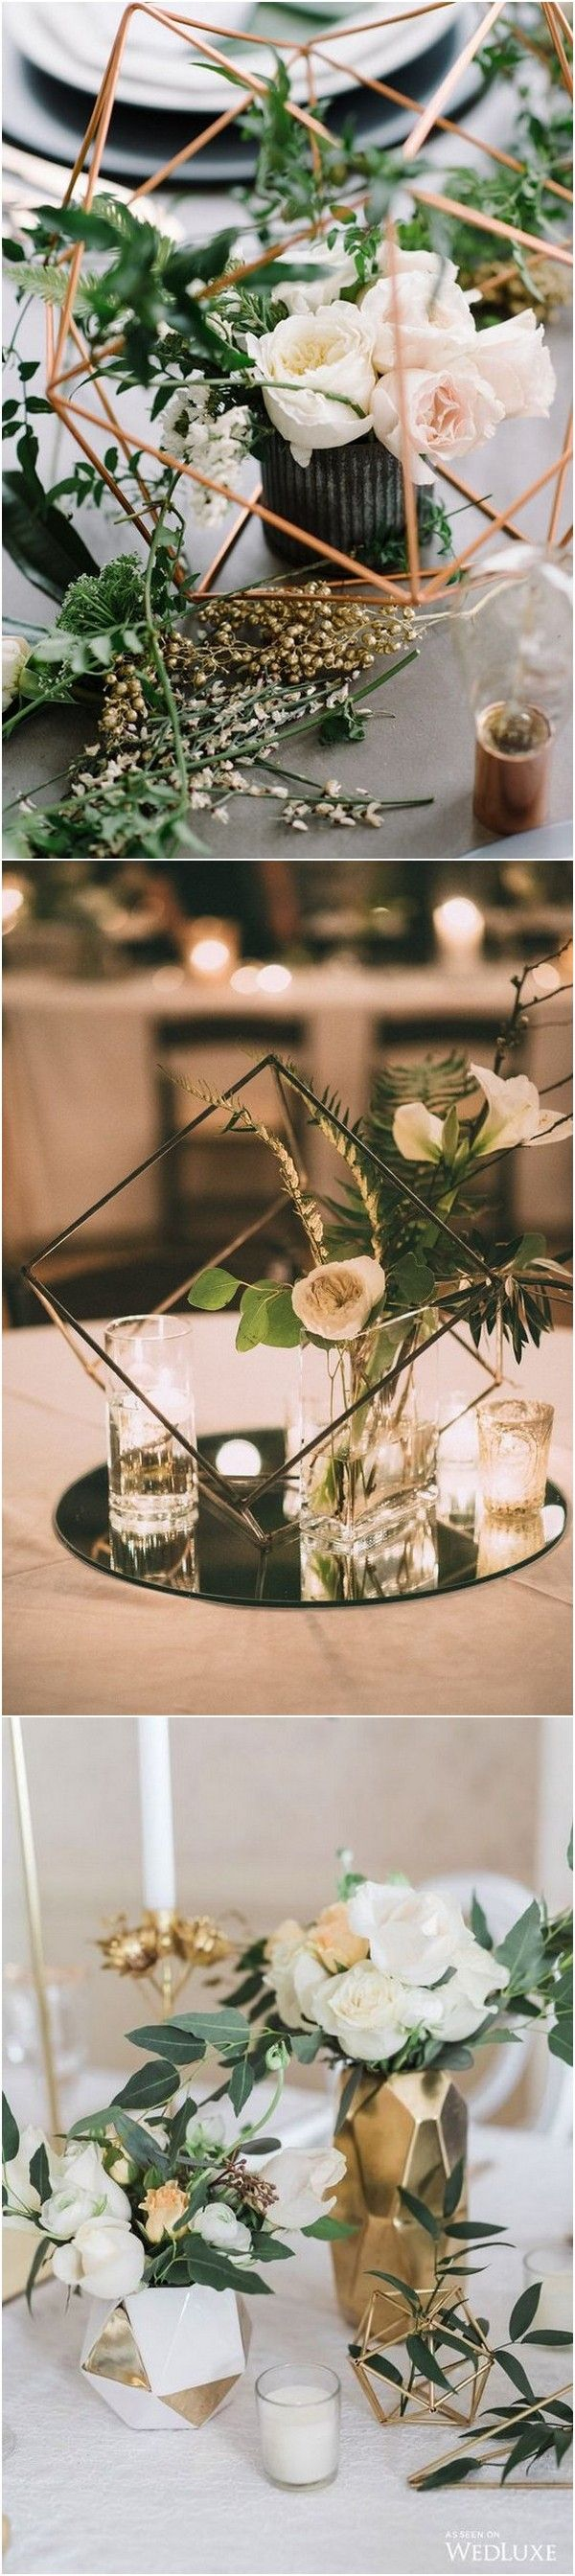 Trending – 20 Industrial Geometric Wedding Centerpieces for 2019 - Page 2 of 2